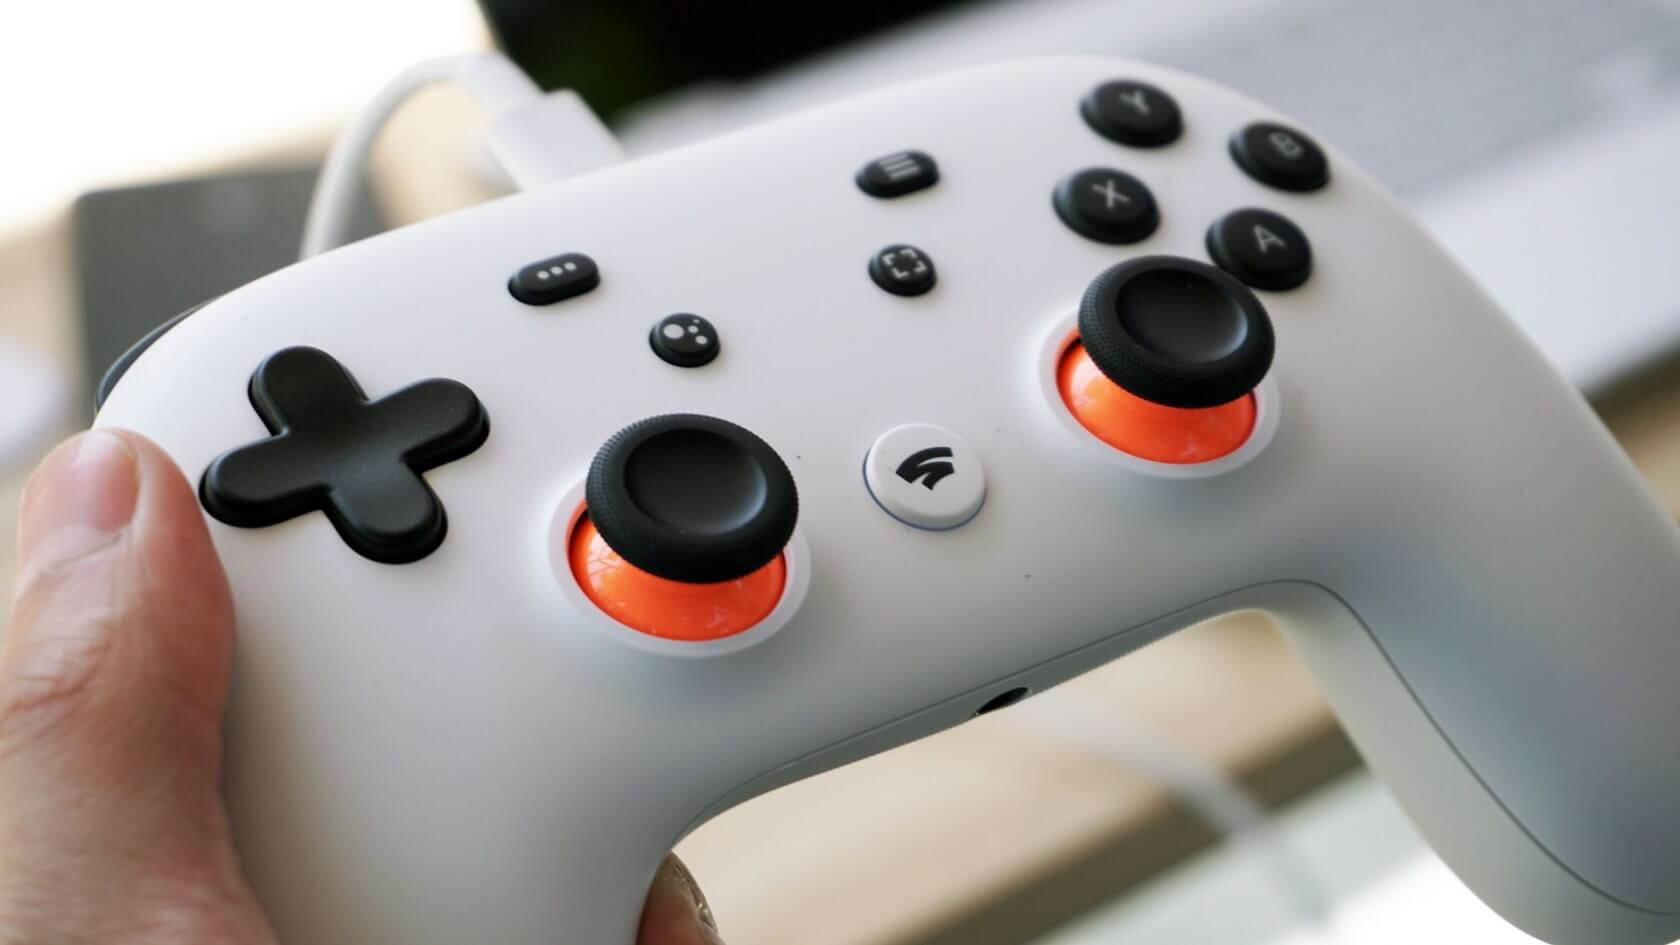 Google Stadia's pricing, exclusive game selection, and launch date will be revealed 'this summer'